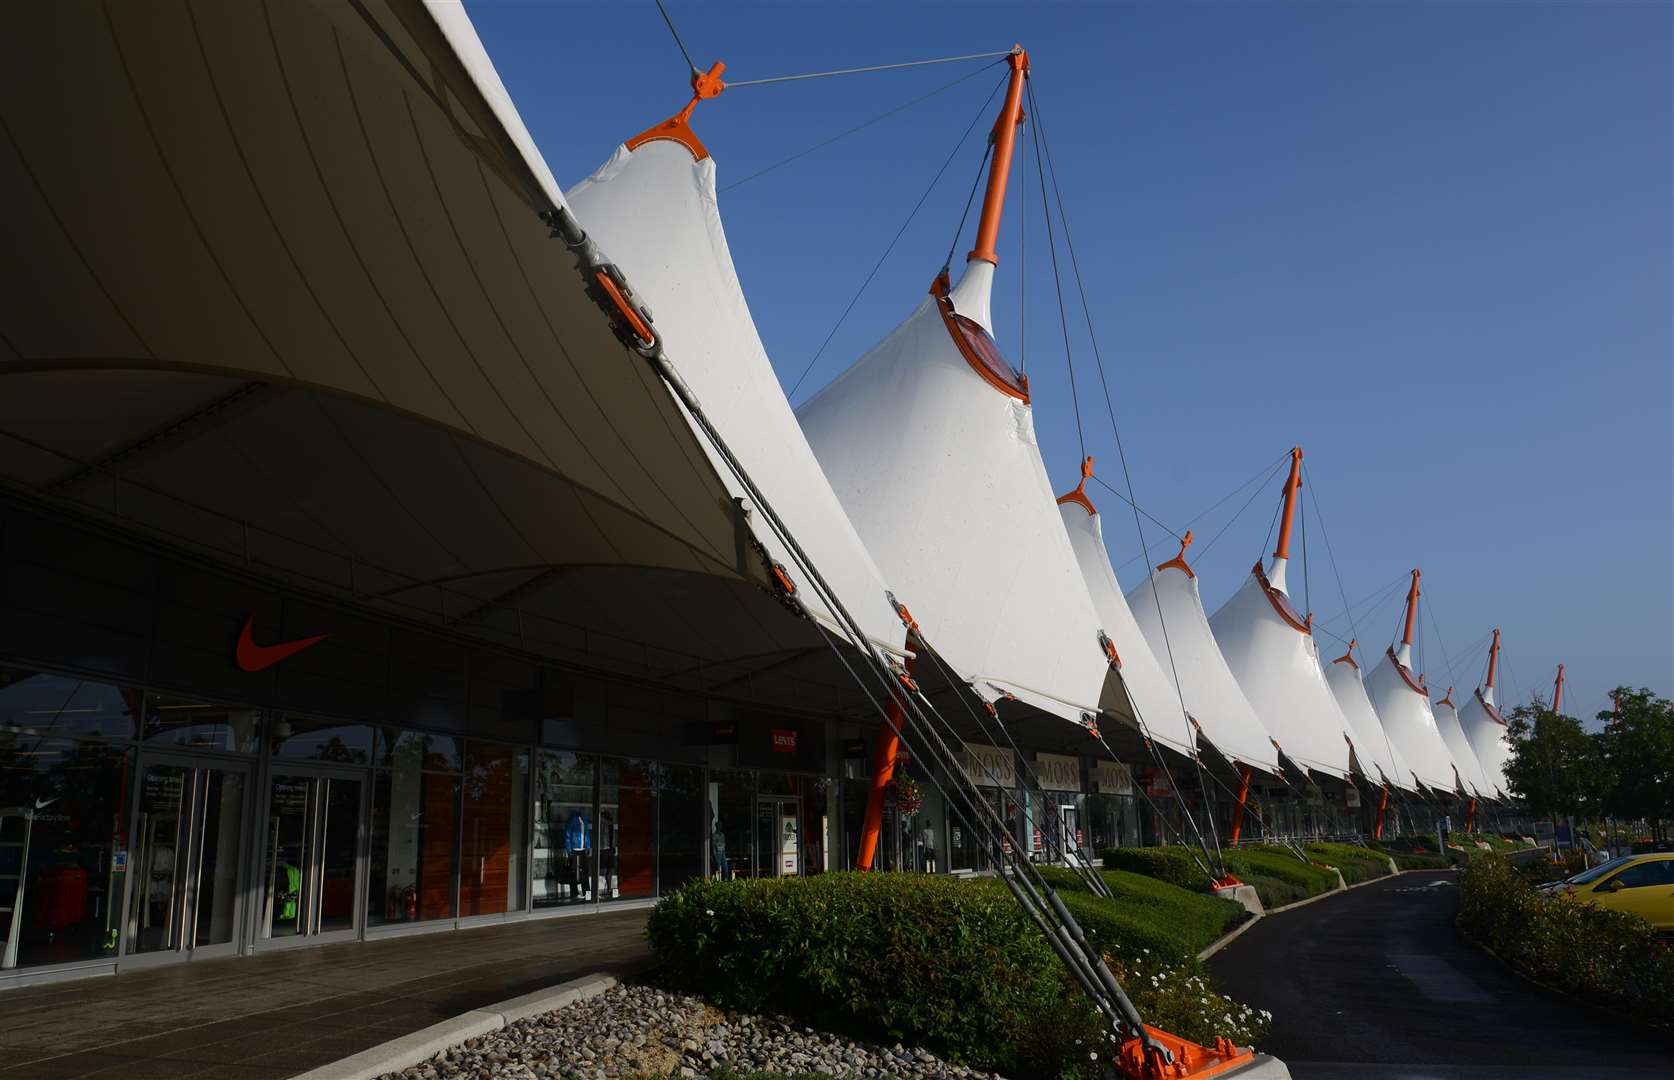 One of Sammy's favourite haunts, the Ashford Designer Outlet